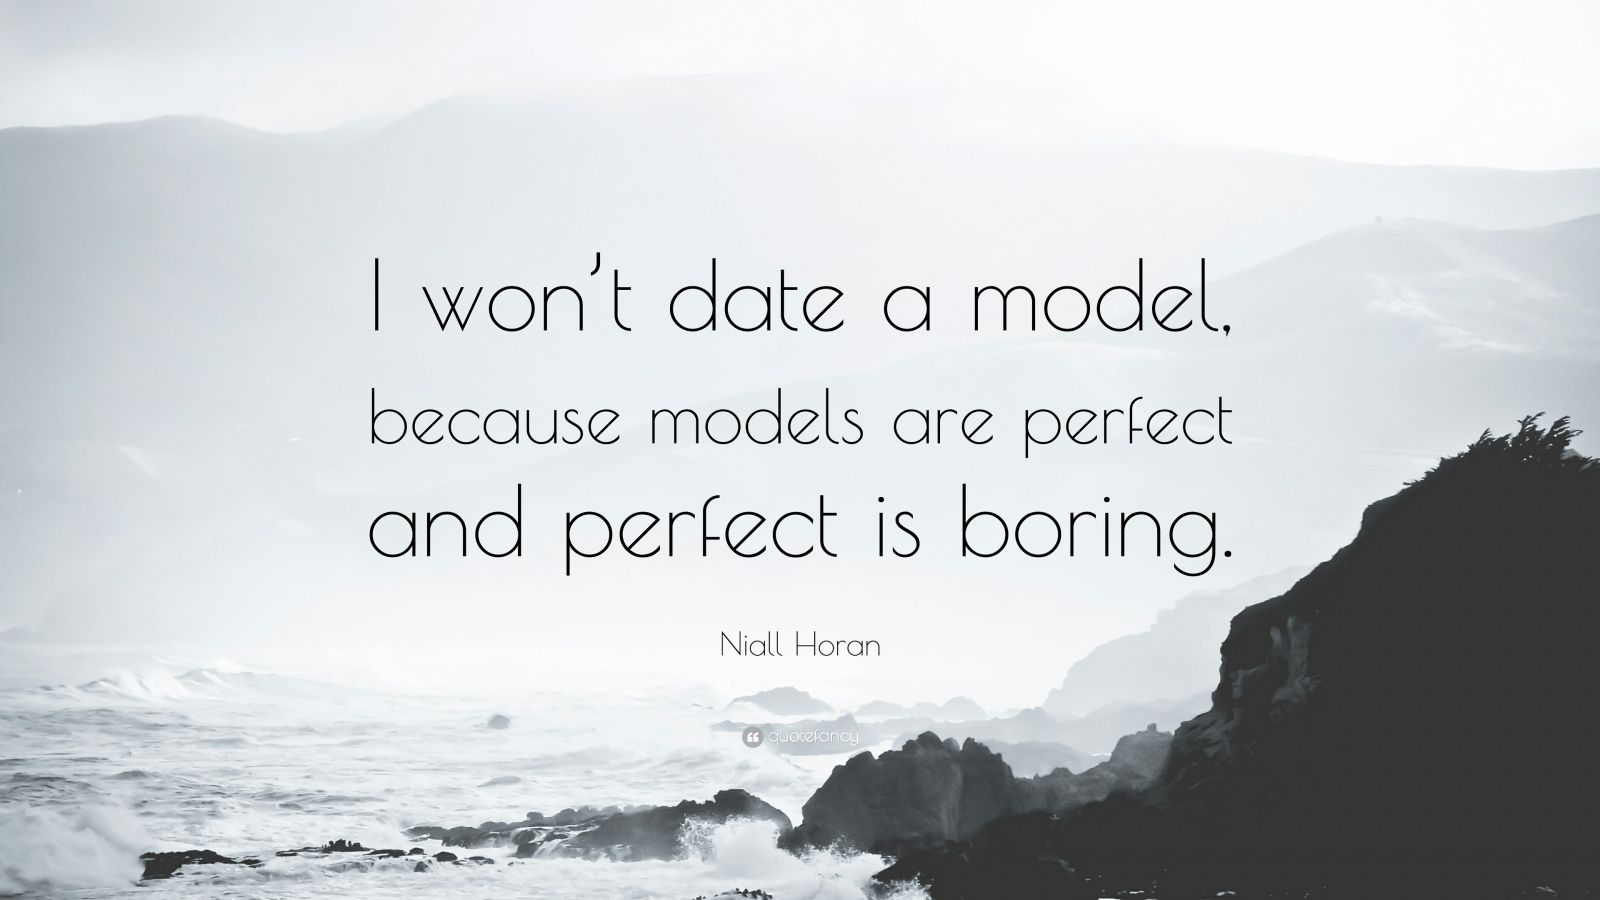 """Niall Horan Quote: """"I won't date a model, because models are perfect and perfect is boring."""""""